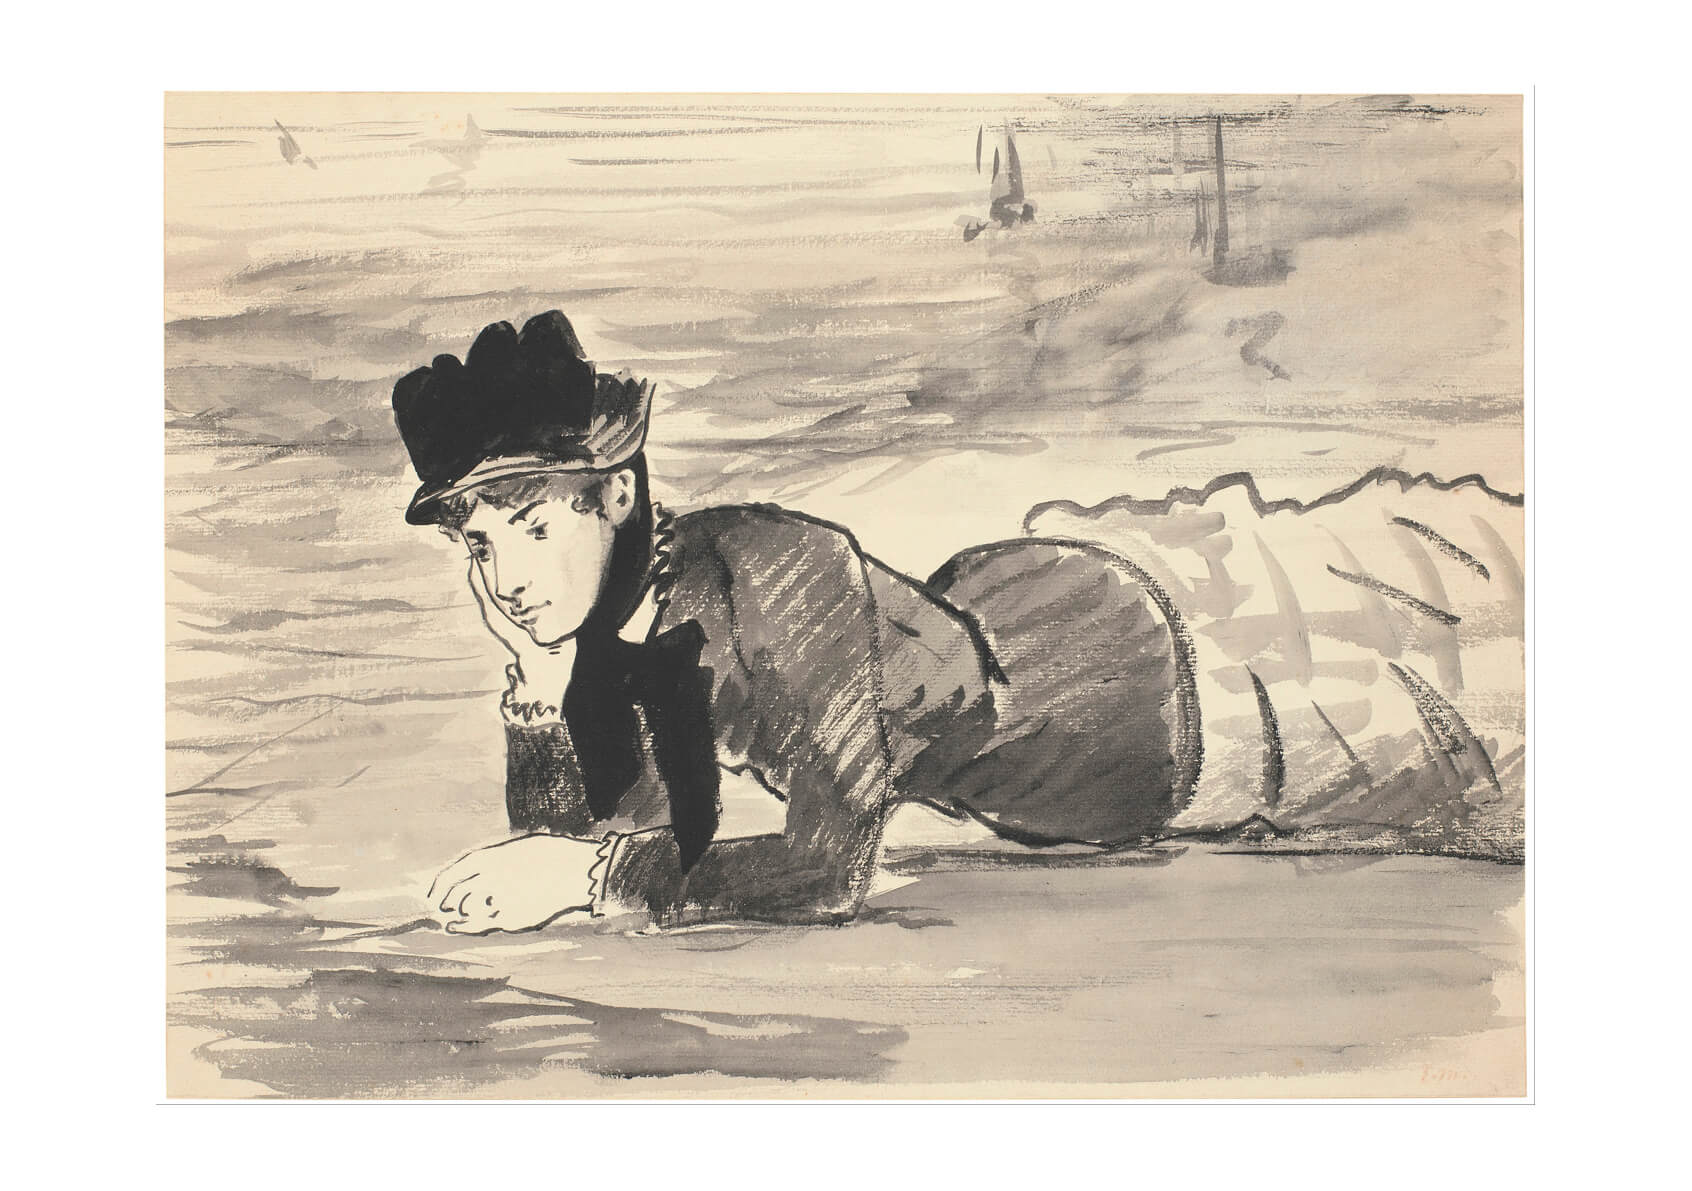 Edouard Manet - Woman Lying on the Beach Annabel Lee